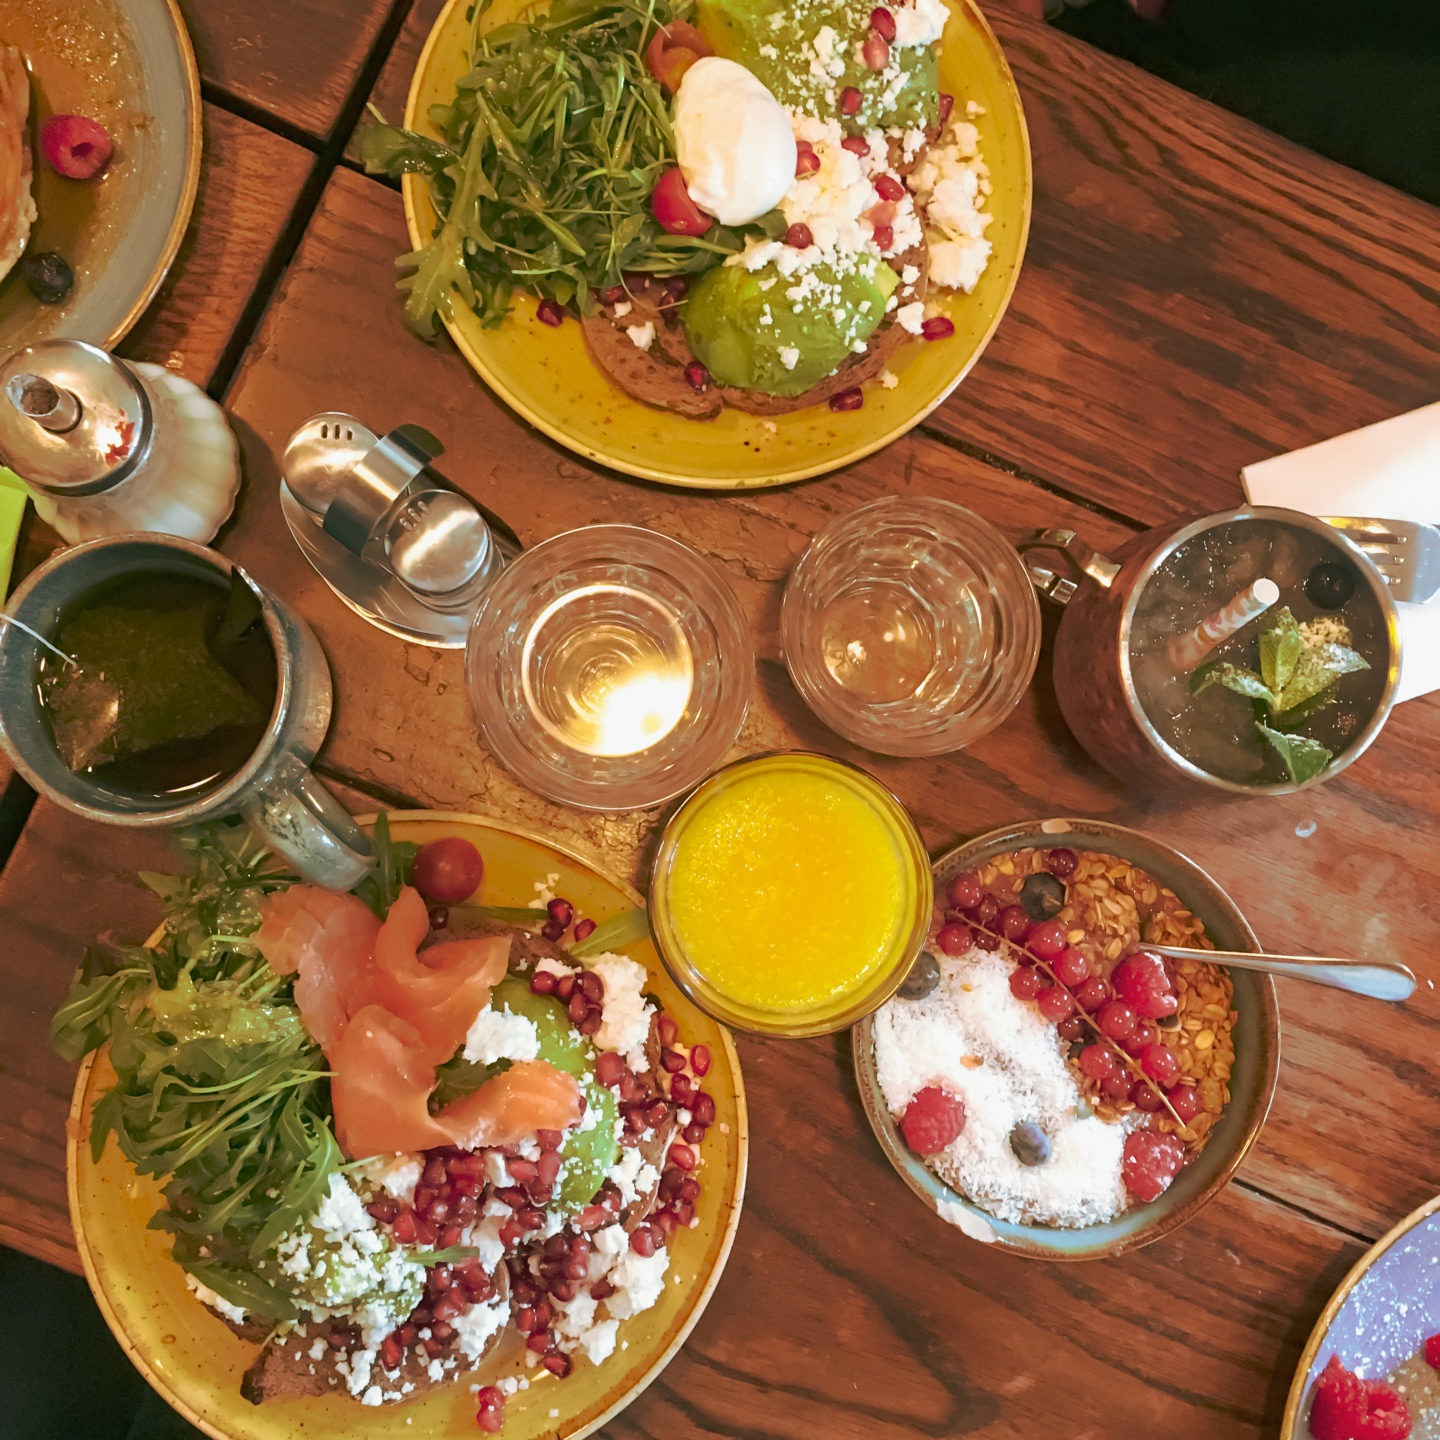 maison-sauvage-brunch-a-paris-25-euros